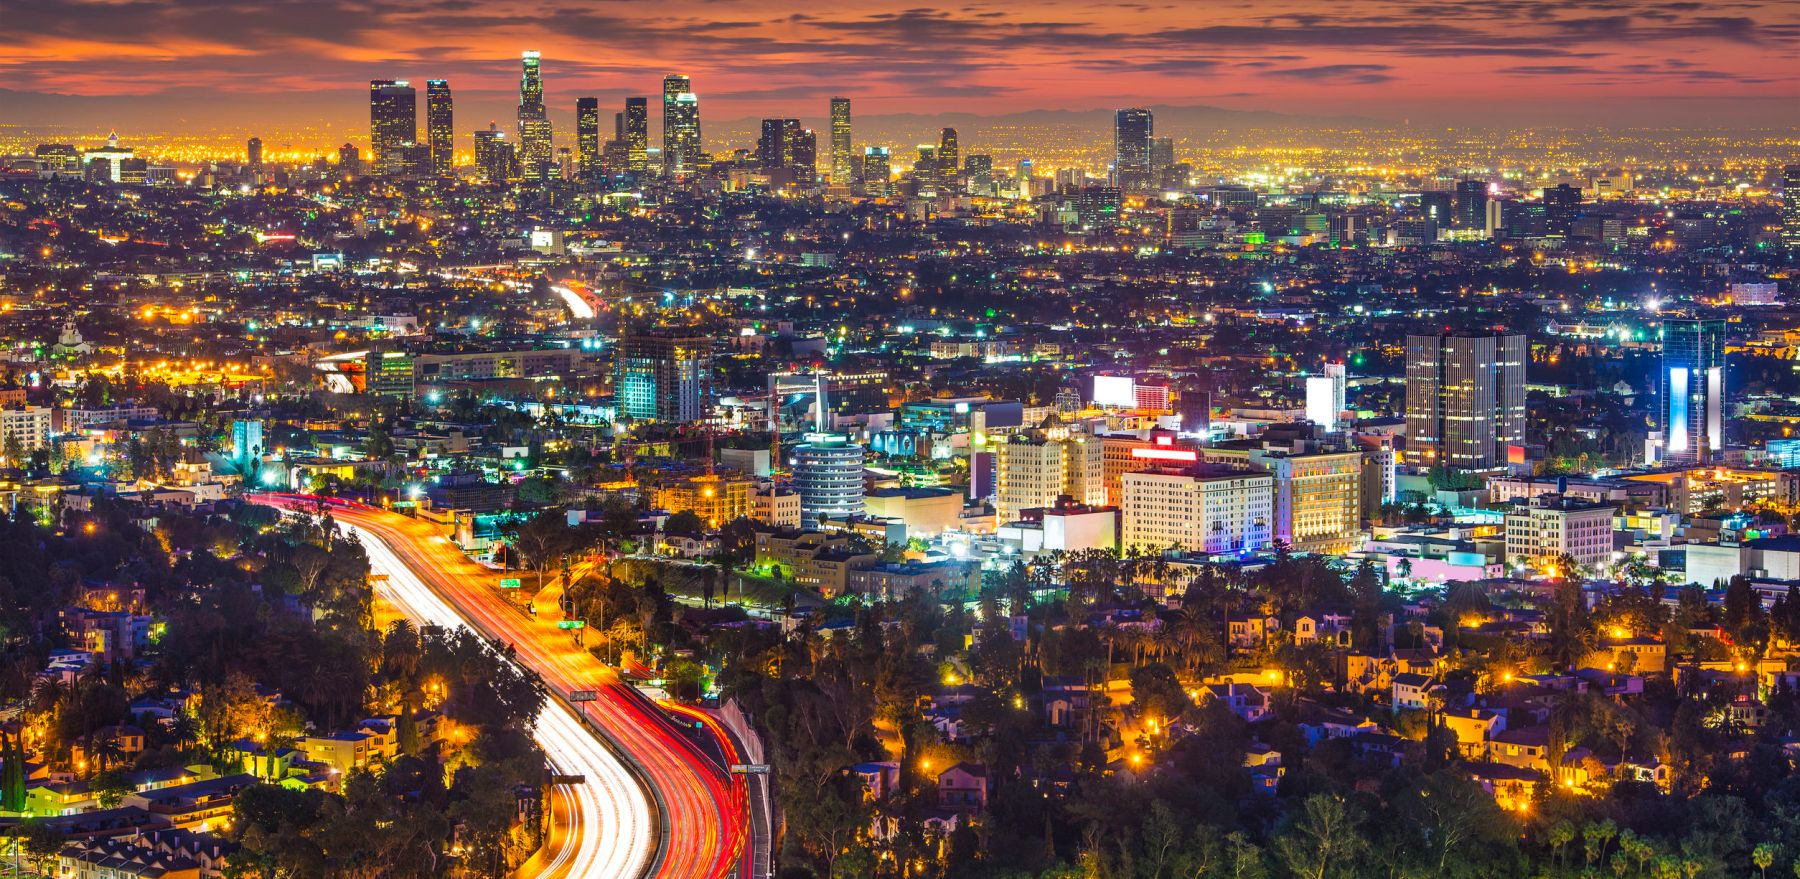 Los Angeles, California in the monring from Mulholland Drive.